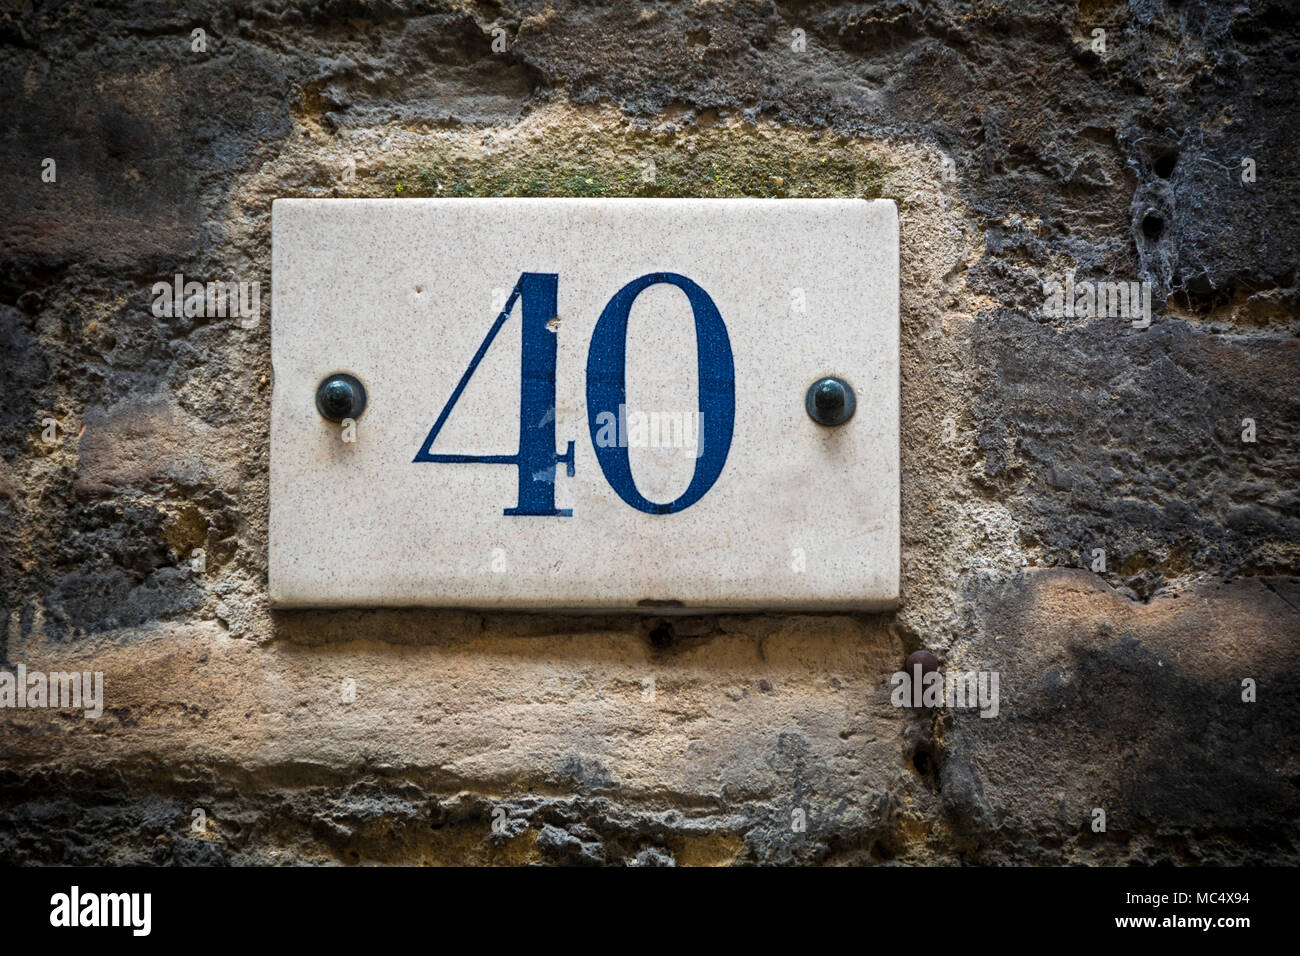 Number forty door number on brick wall - Stock Image